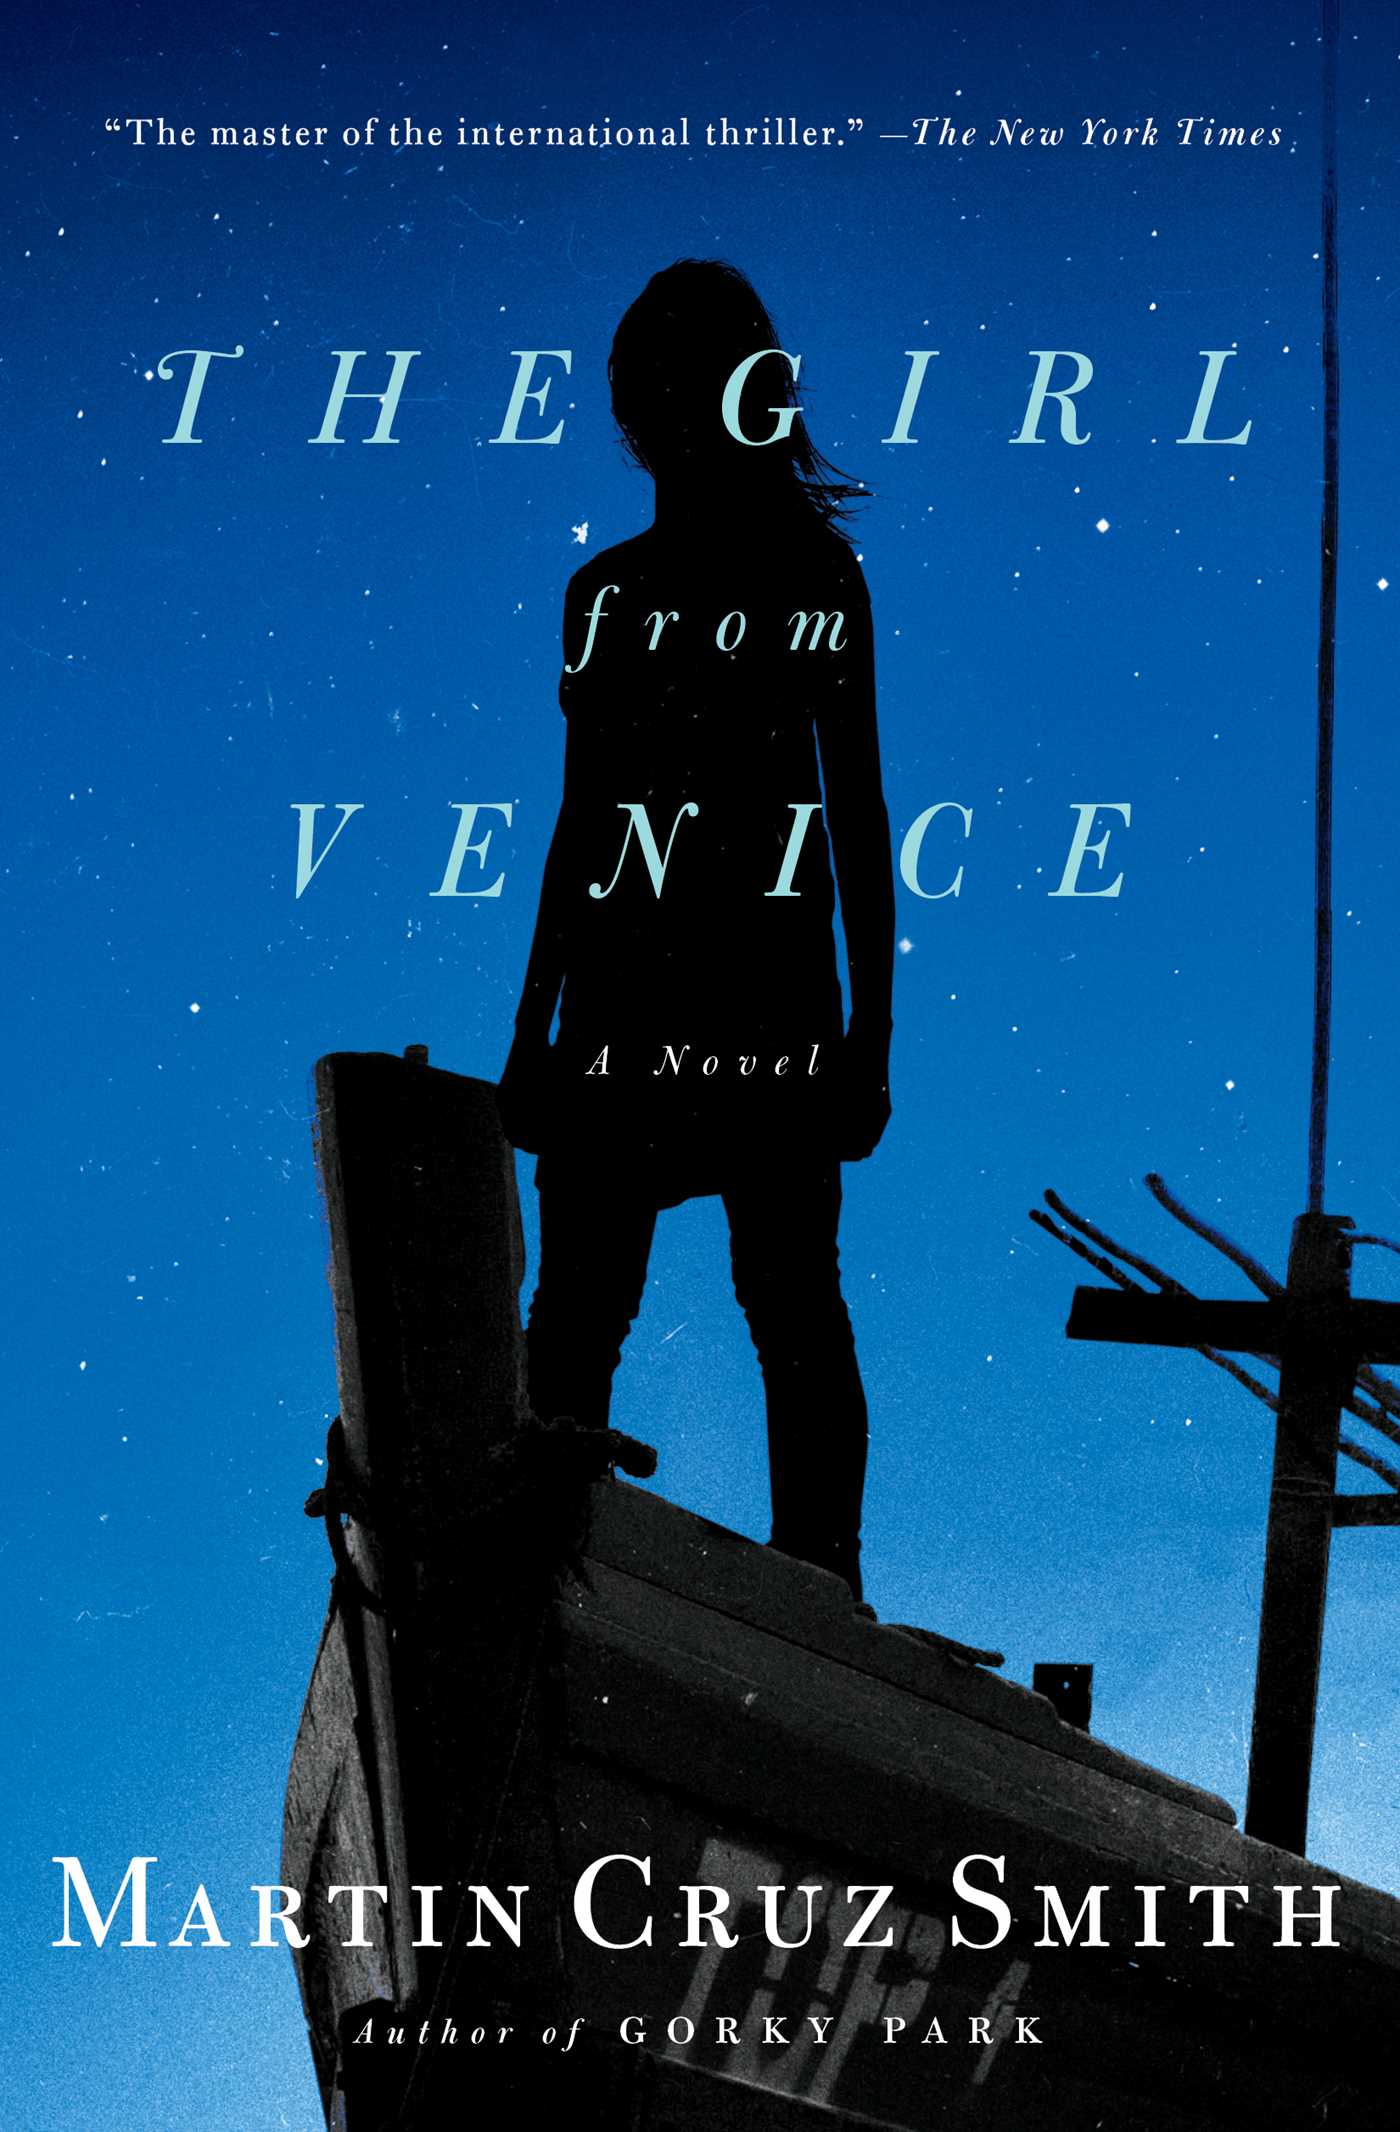 The girl from venice 9781439140246 hr